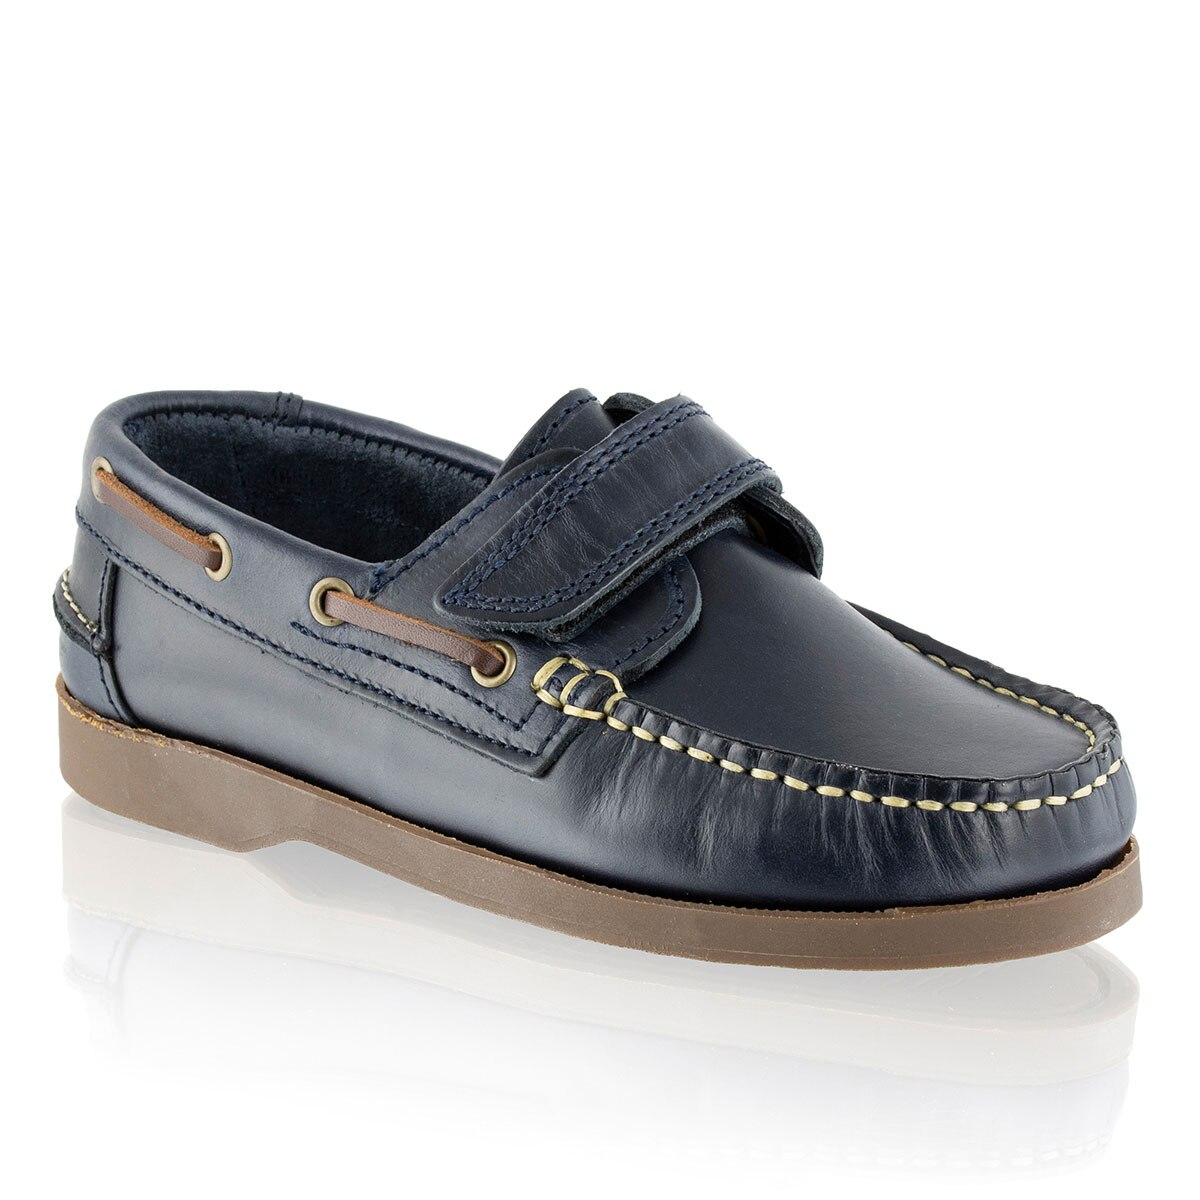 Russell and Bromley KEEL V Velcro Boat Shoe